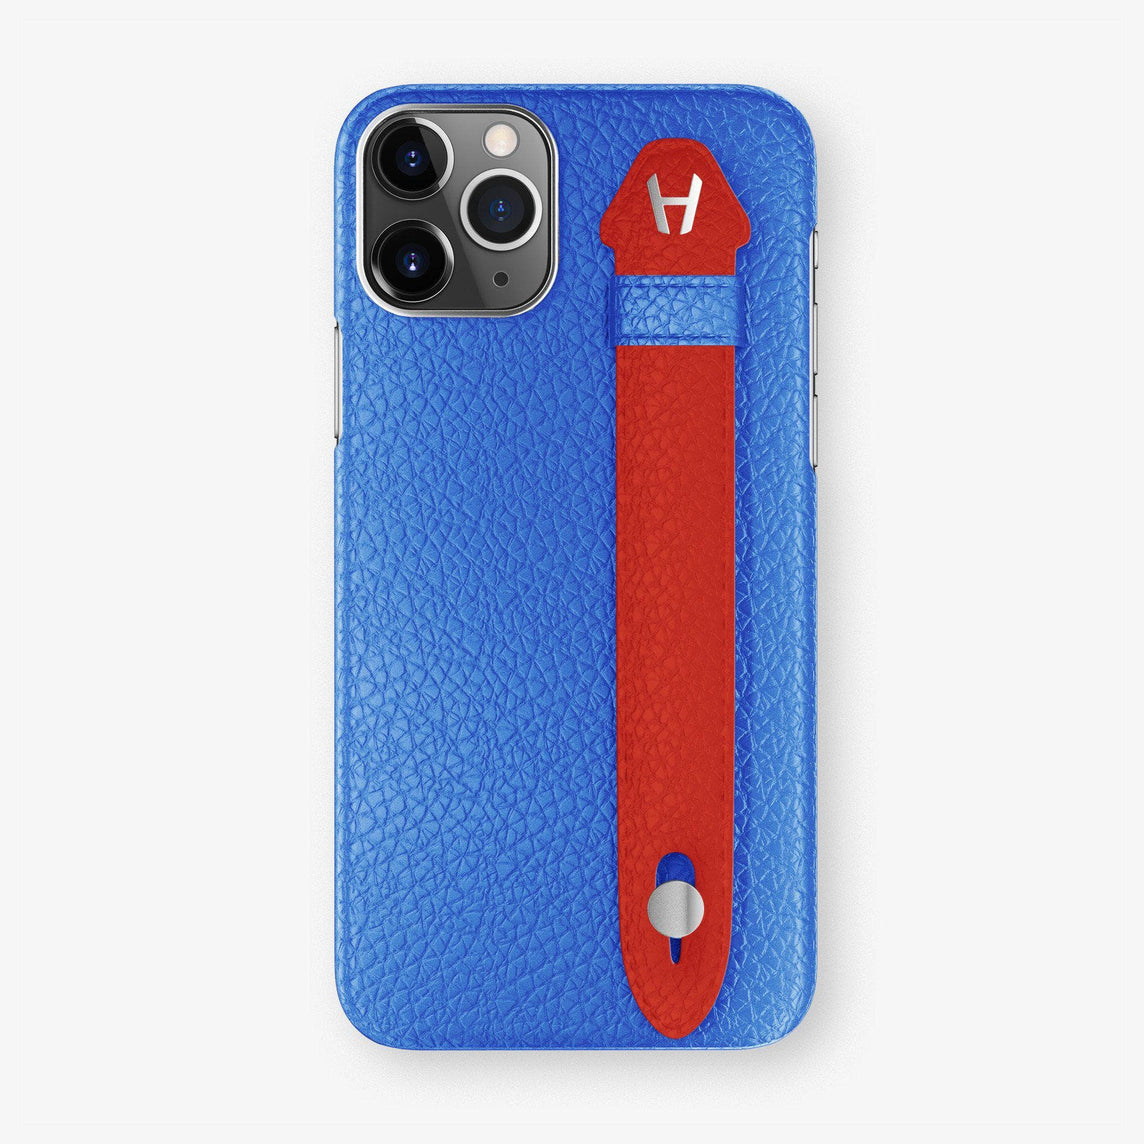 Calfskin Finger Case iPhone 11 Pro | Peony Blue/Red - Stainless Steel